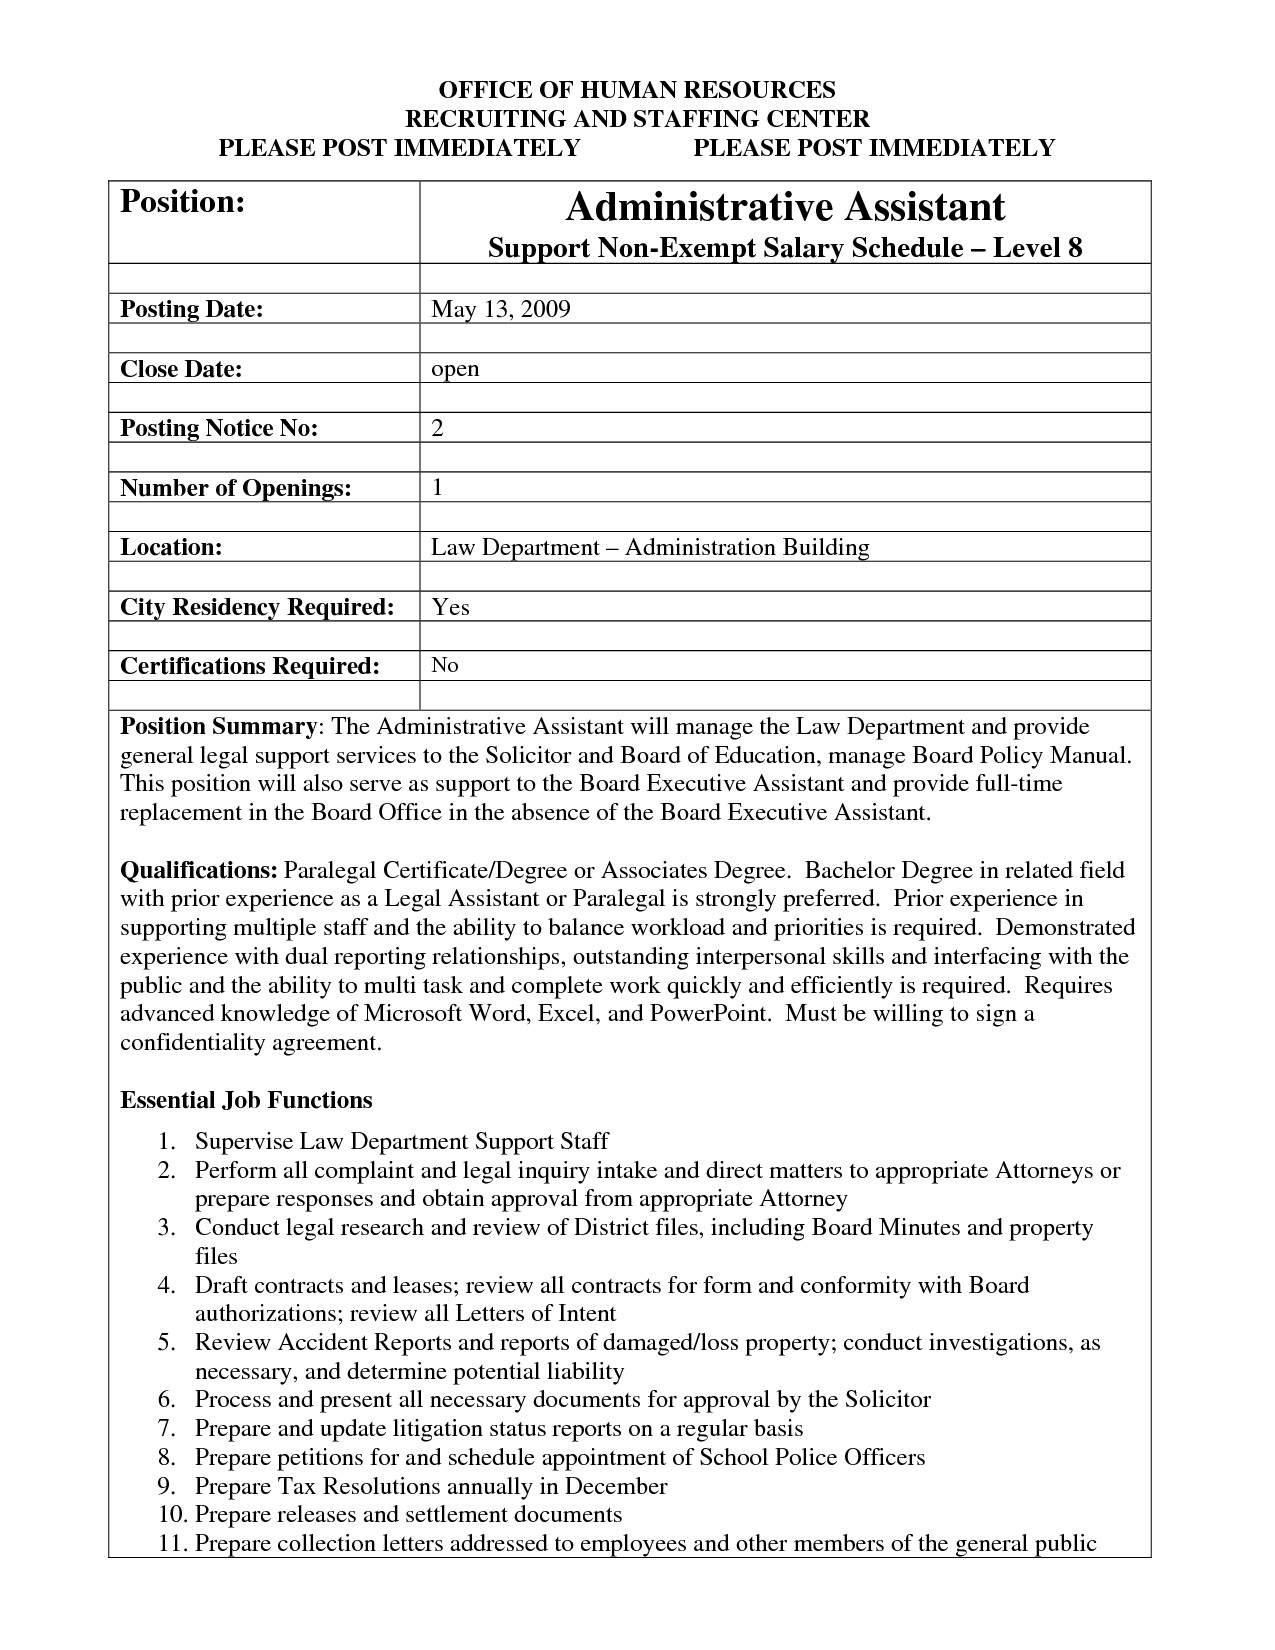 Job Posting Template Word Best S Of Template Job Posting Sample Job